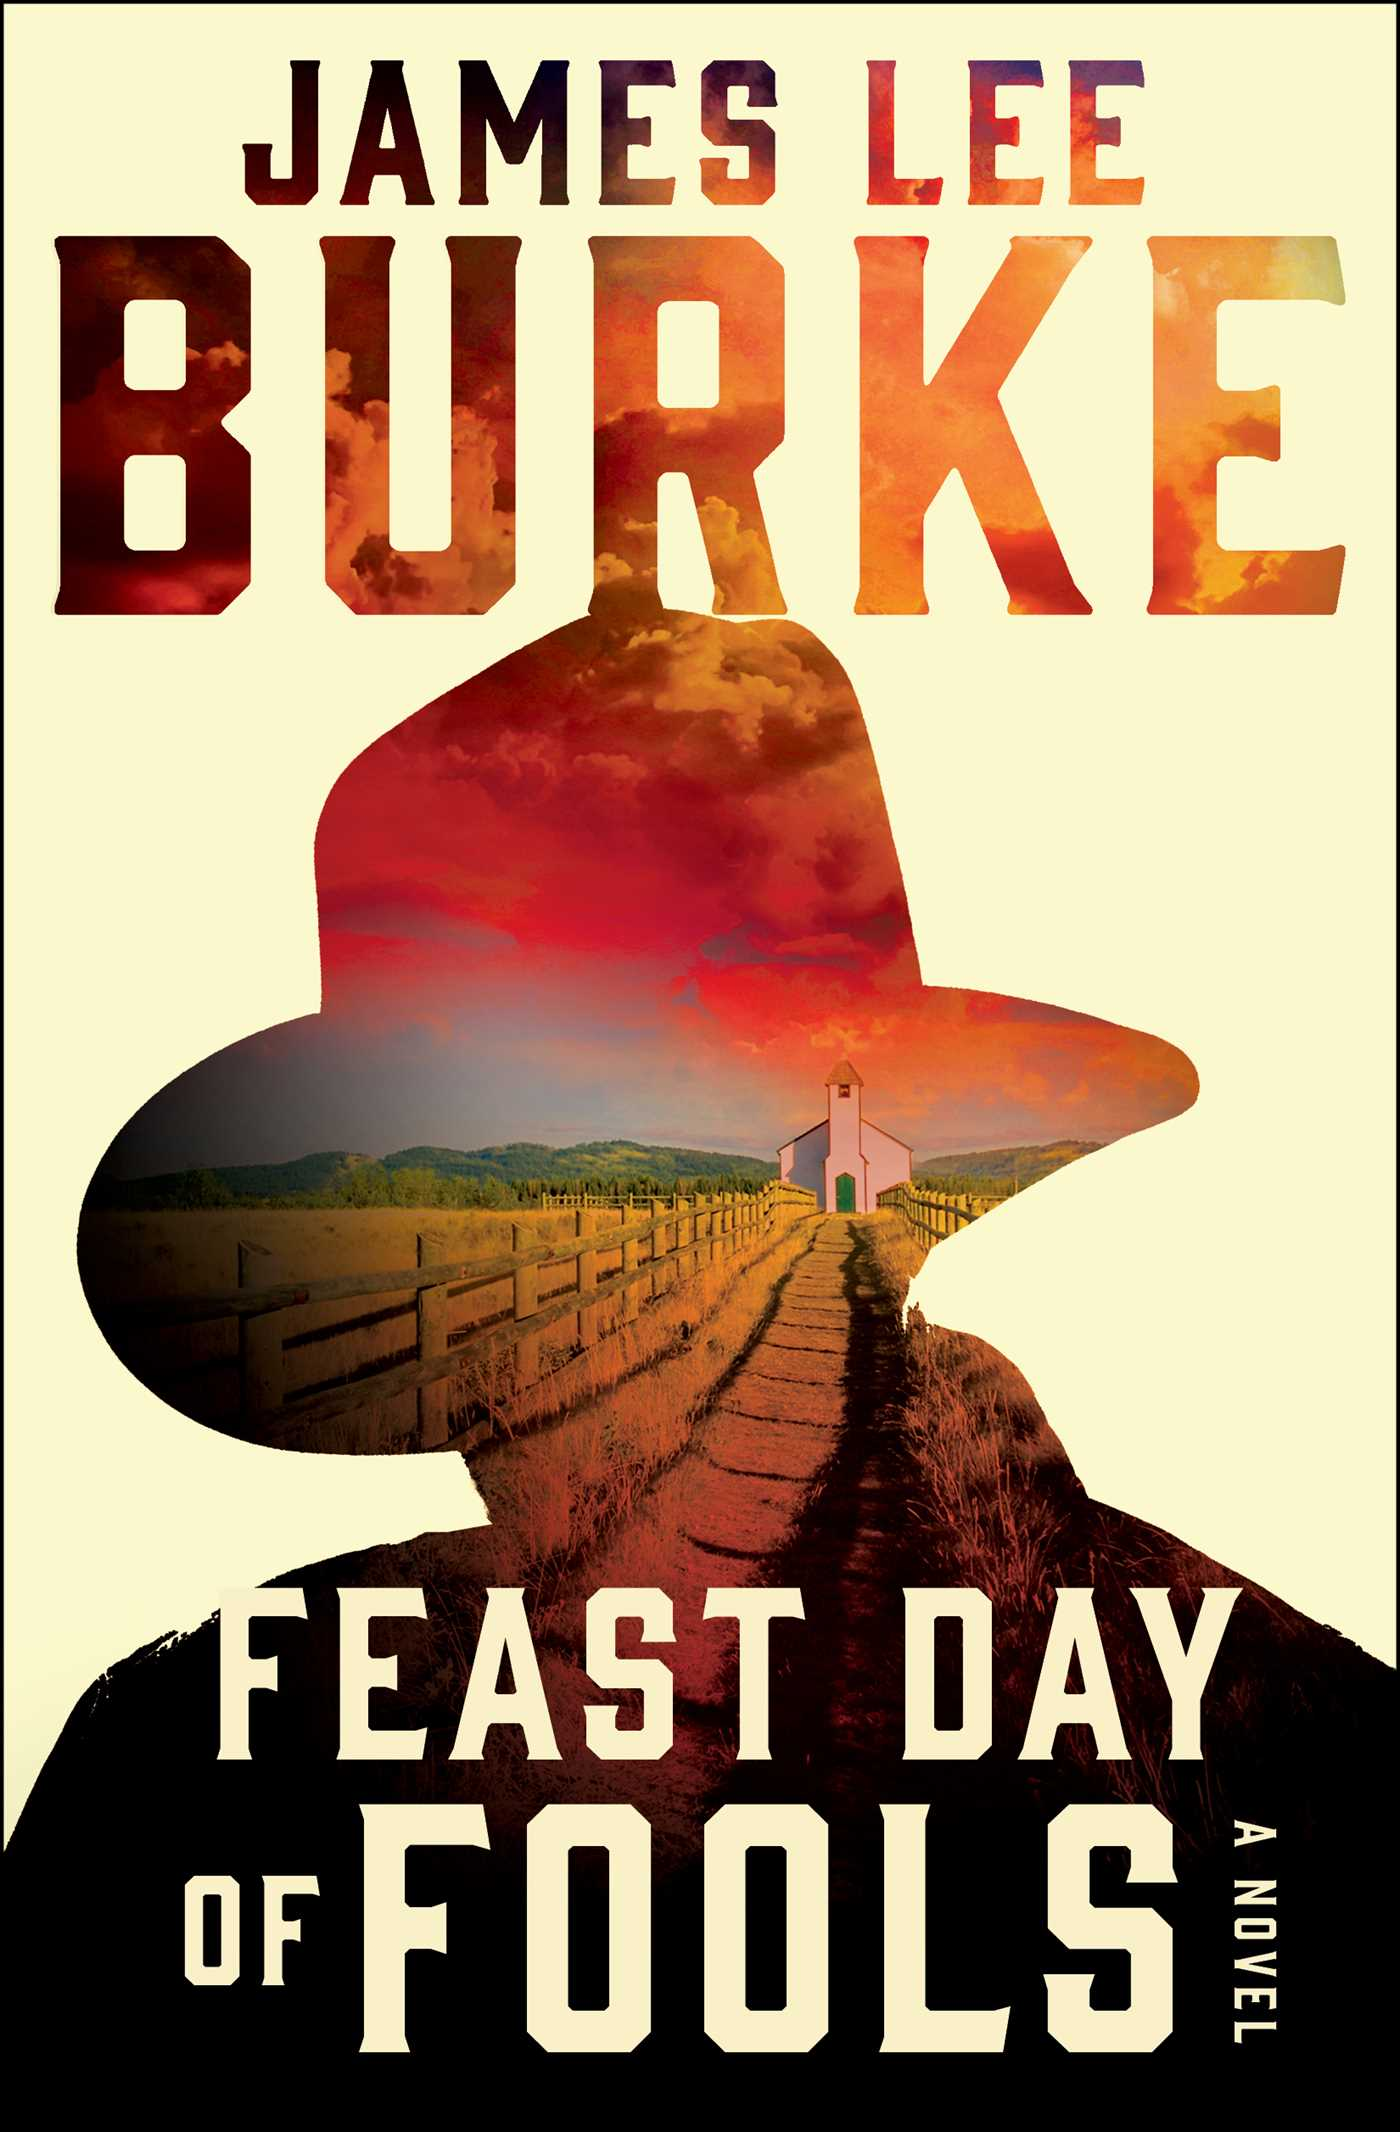 Feast Day of Fools   Book by James Lee Burke   Official